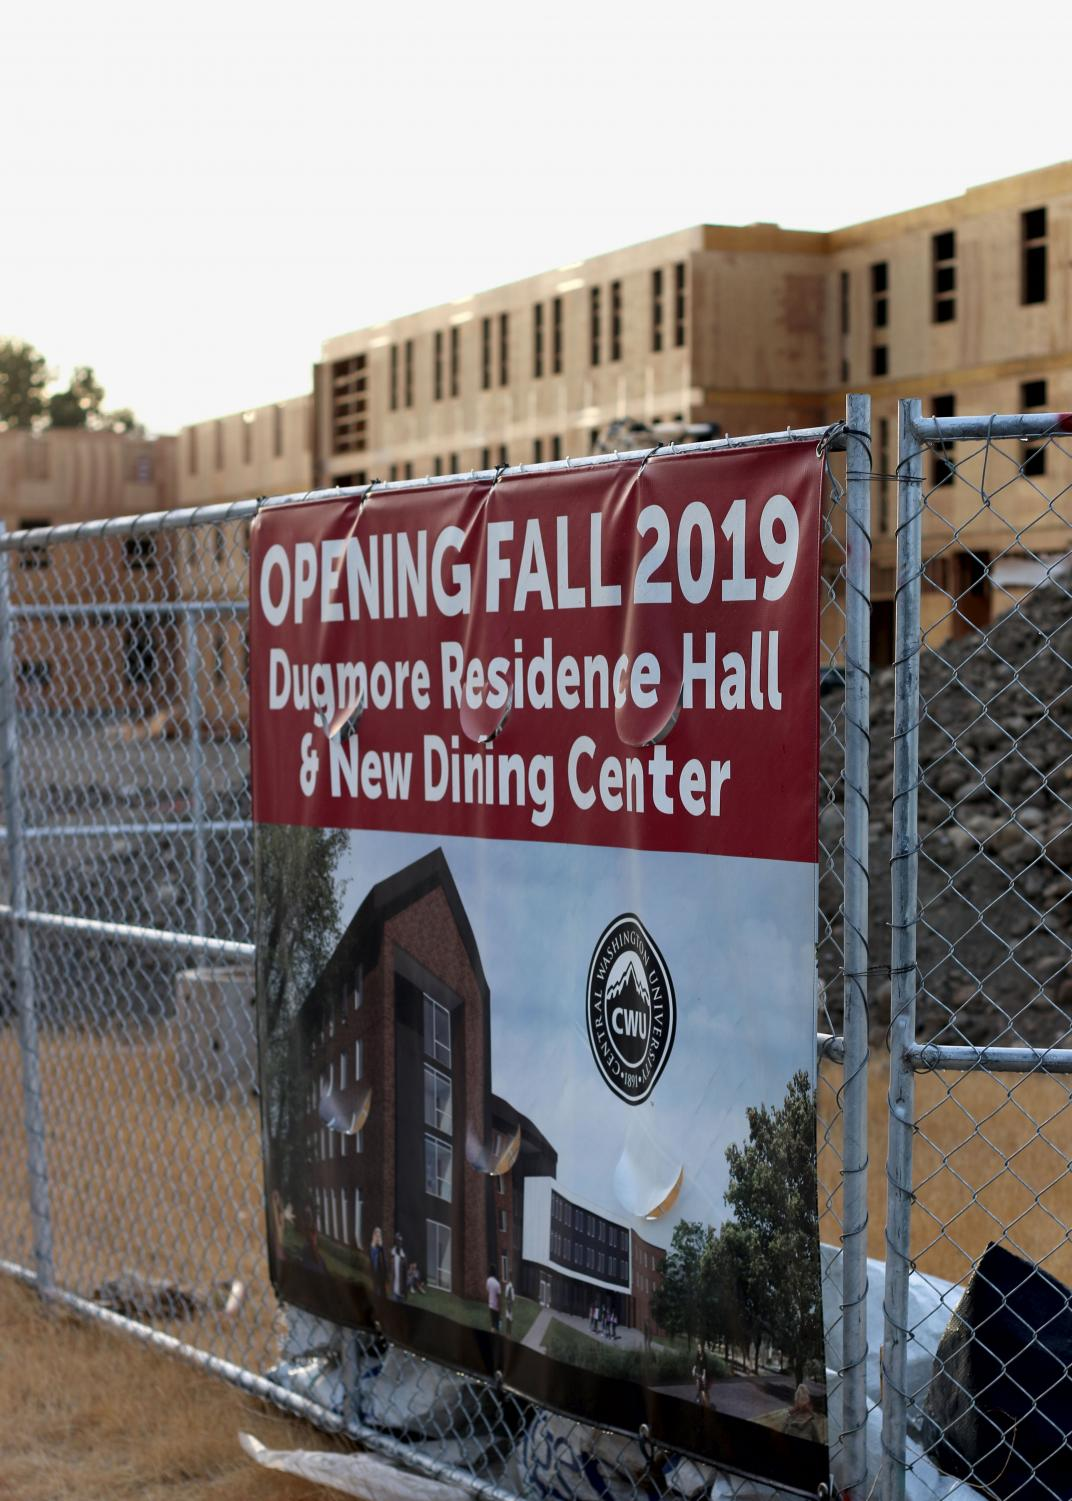 Dugmore Hall is expected to open in fall 2019. Located on noth campus, the hall will provide approximately 400 beds for on-campus housing.